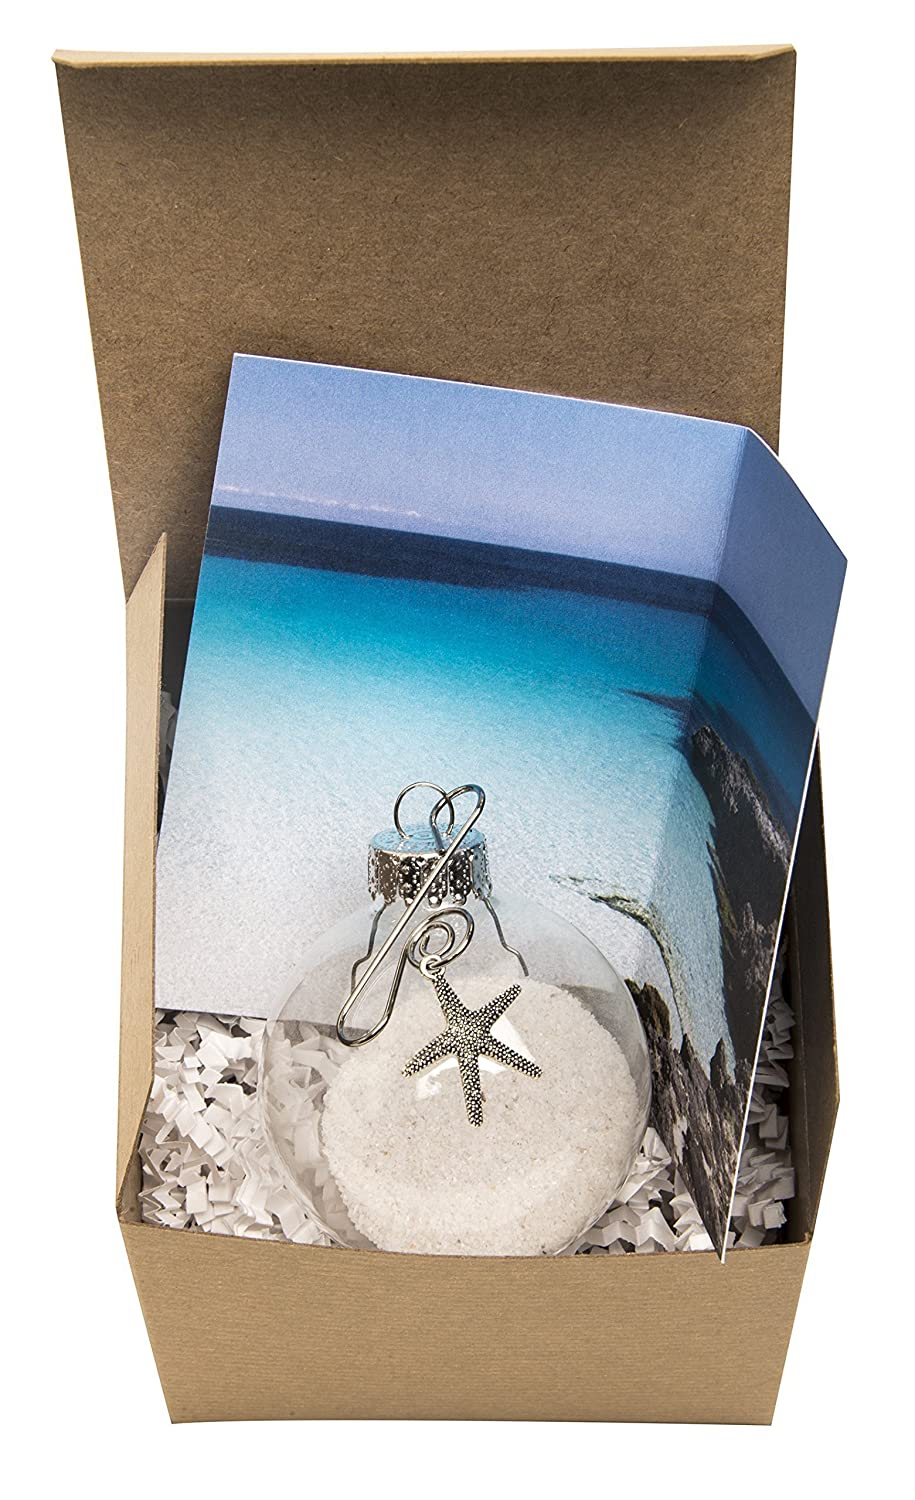 Sand and Starfish Story Ornament. Made a Difference to that One Story Card Gift Boxed |For volunteers and Those who make a Difference.